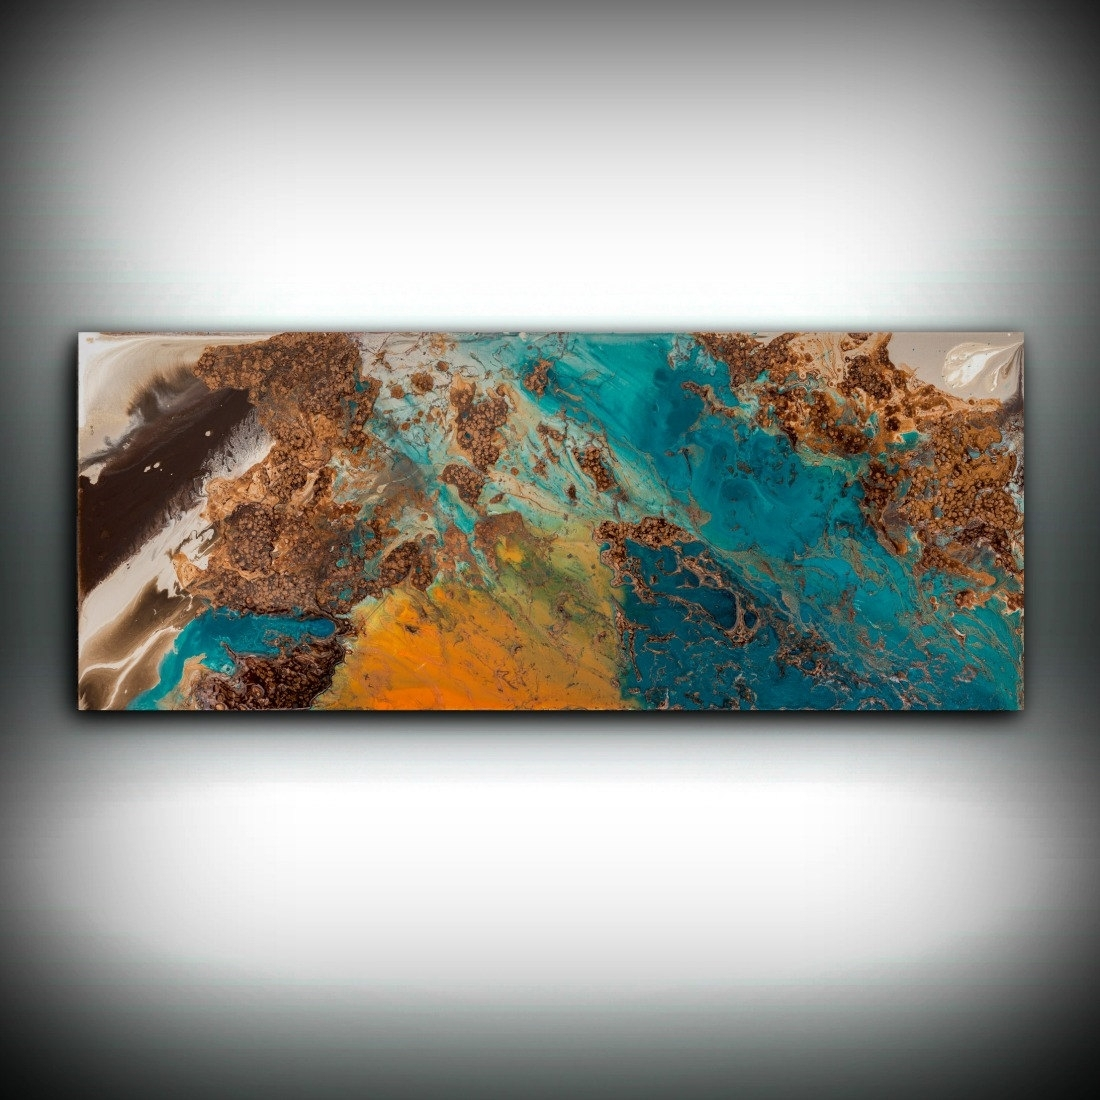 Sale Blue And Copper Art, Wall Art Prints Fine Art Prints Abstract Regarding Most Current Framed Fine Art Prints (View 15 of 15)